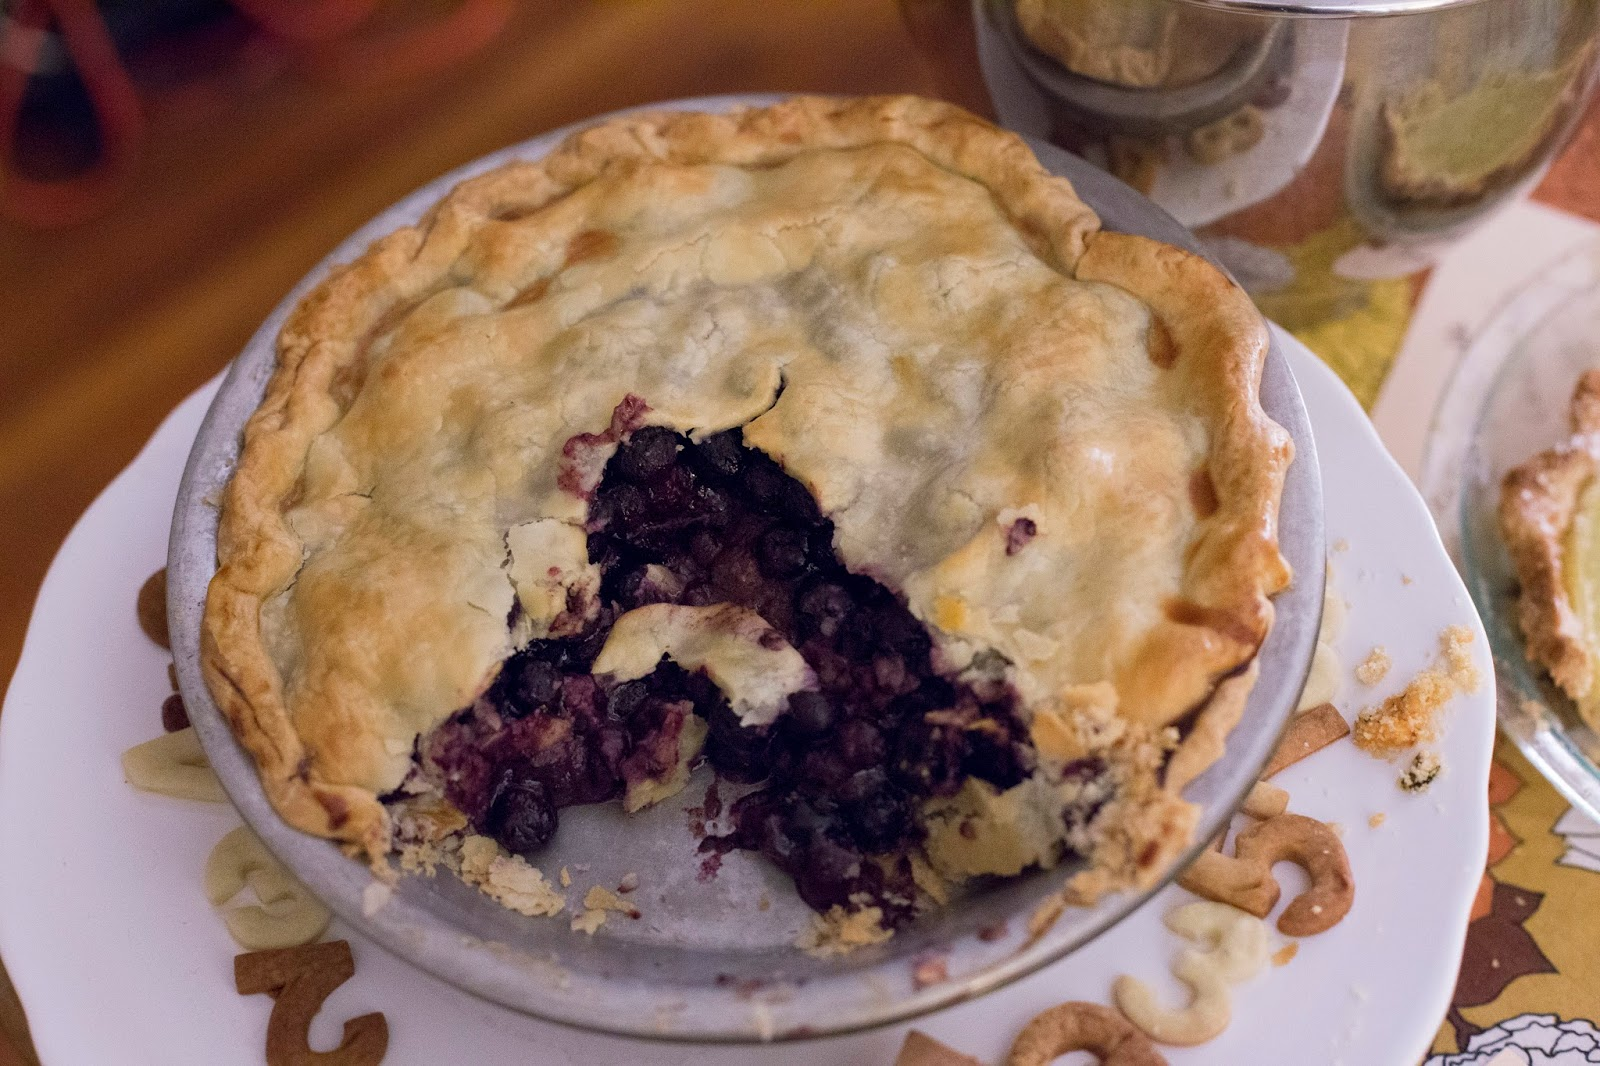 Blueberry Pie for Pi(e) Day